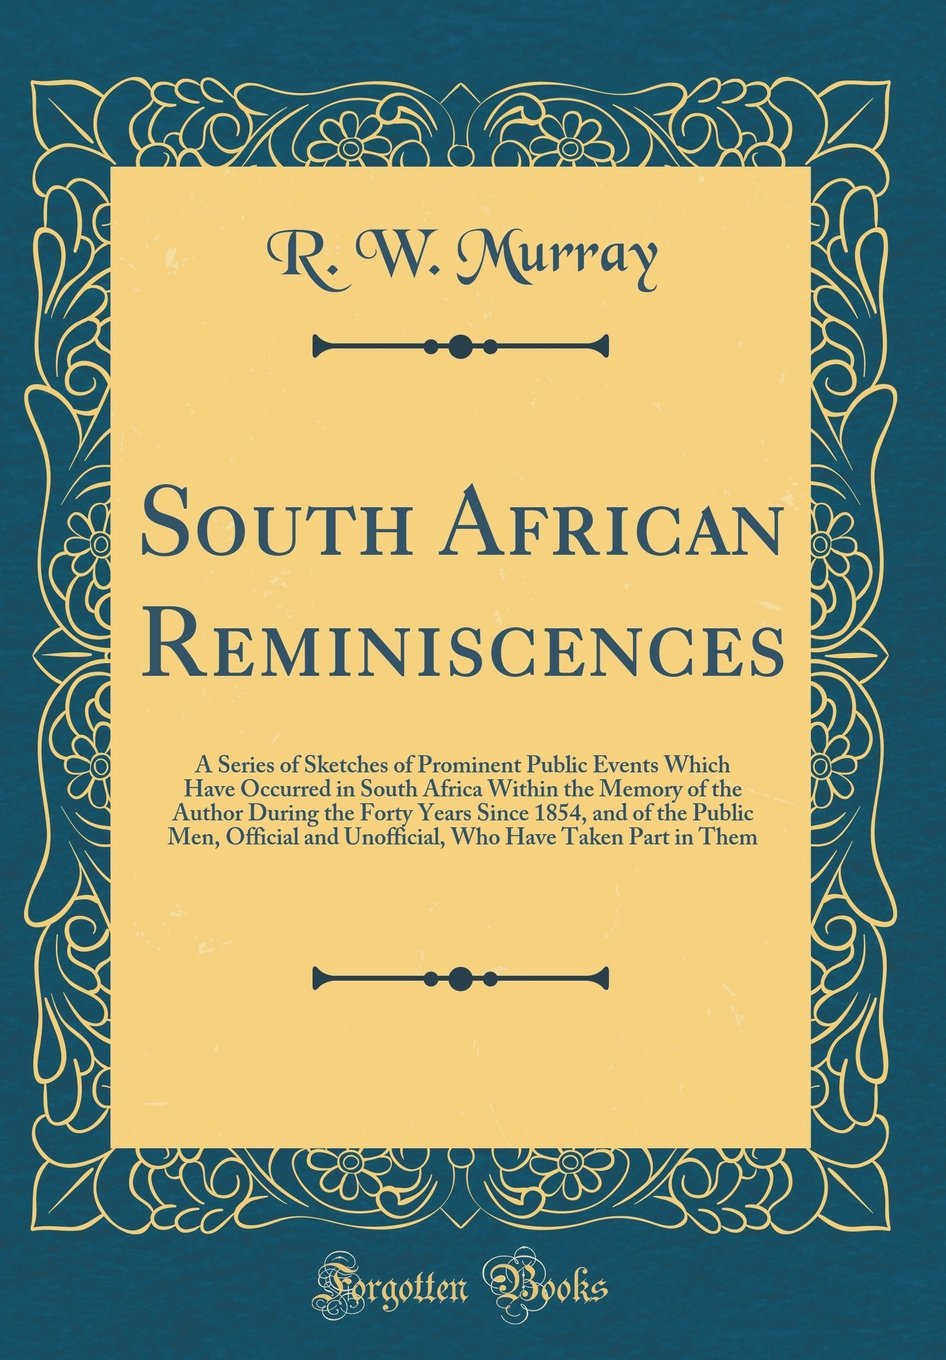 South African Reminiscences: A Series of Sketches of Prominent Public Events Which Have Occurred in South Africa Within the Memory of the Author ... and Unofficial, Who Have Taken Part in Them ebook